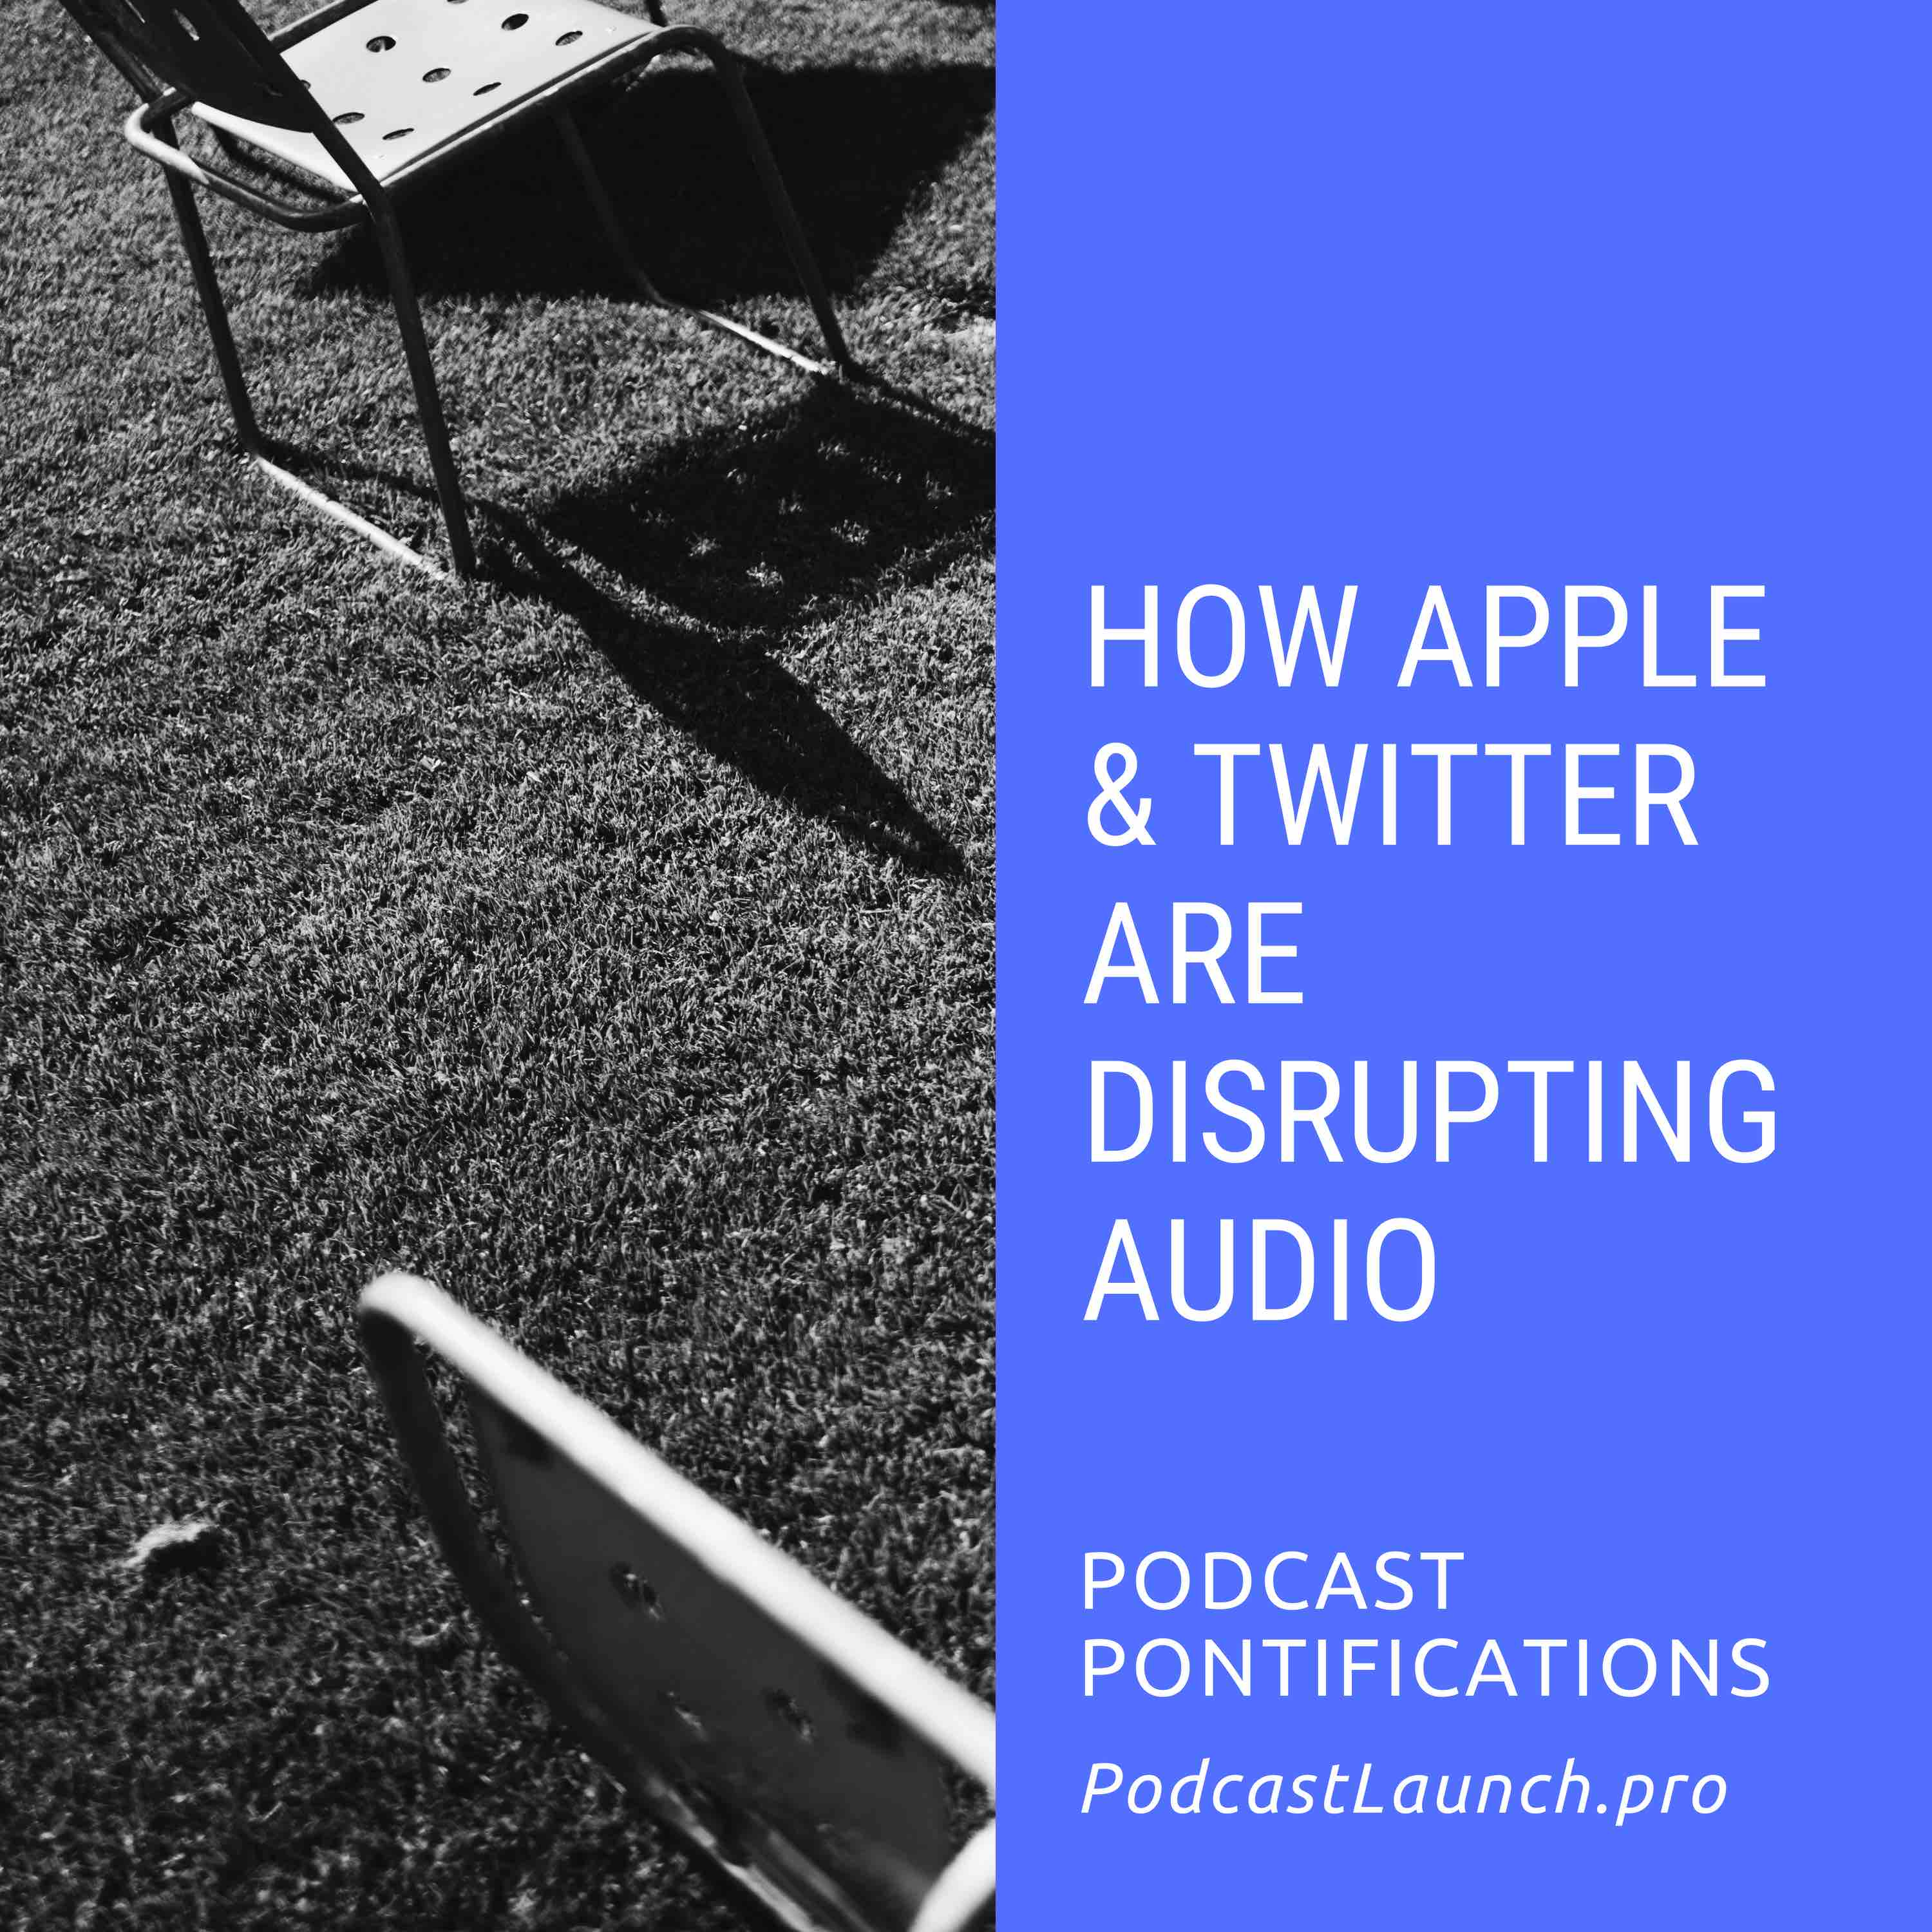 How Apple and Twitter Are Disrupting Audio